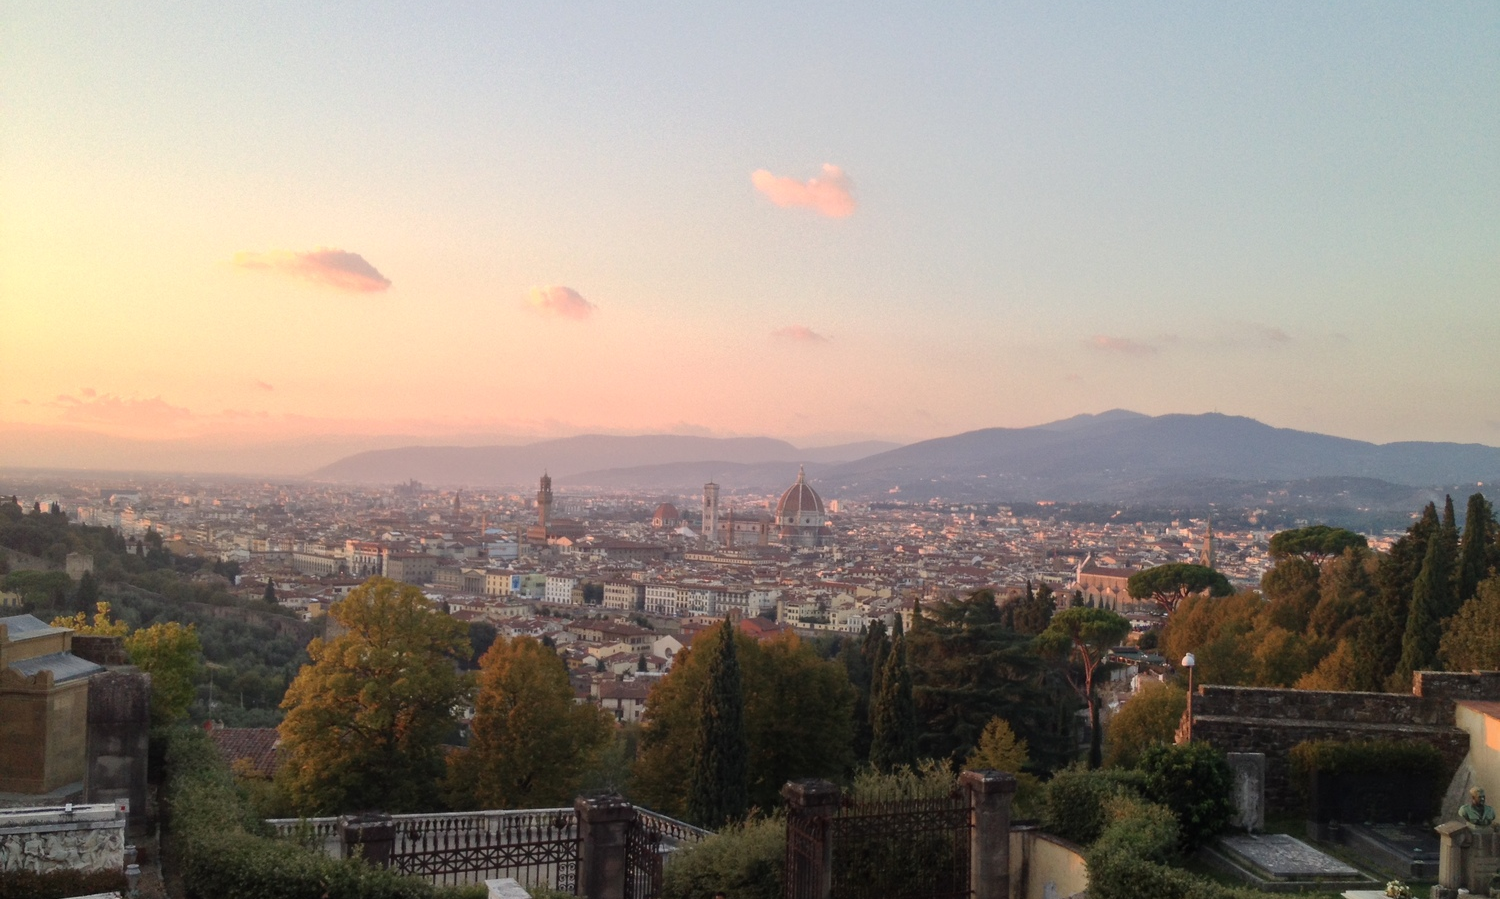 View of Florencefrom Piazza Michelangelo